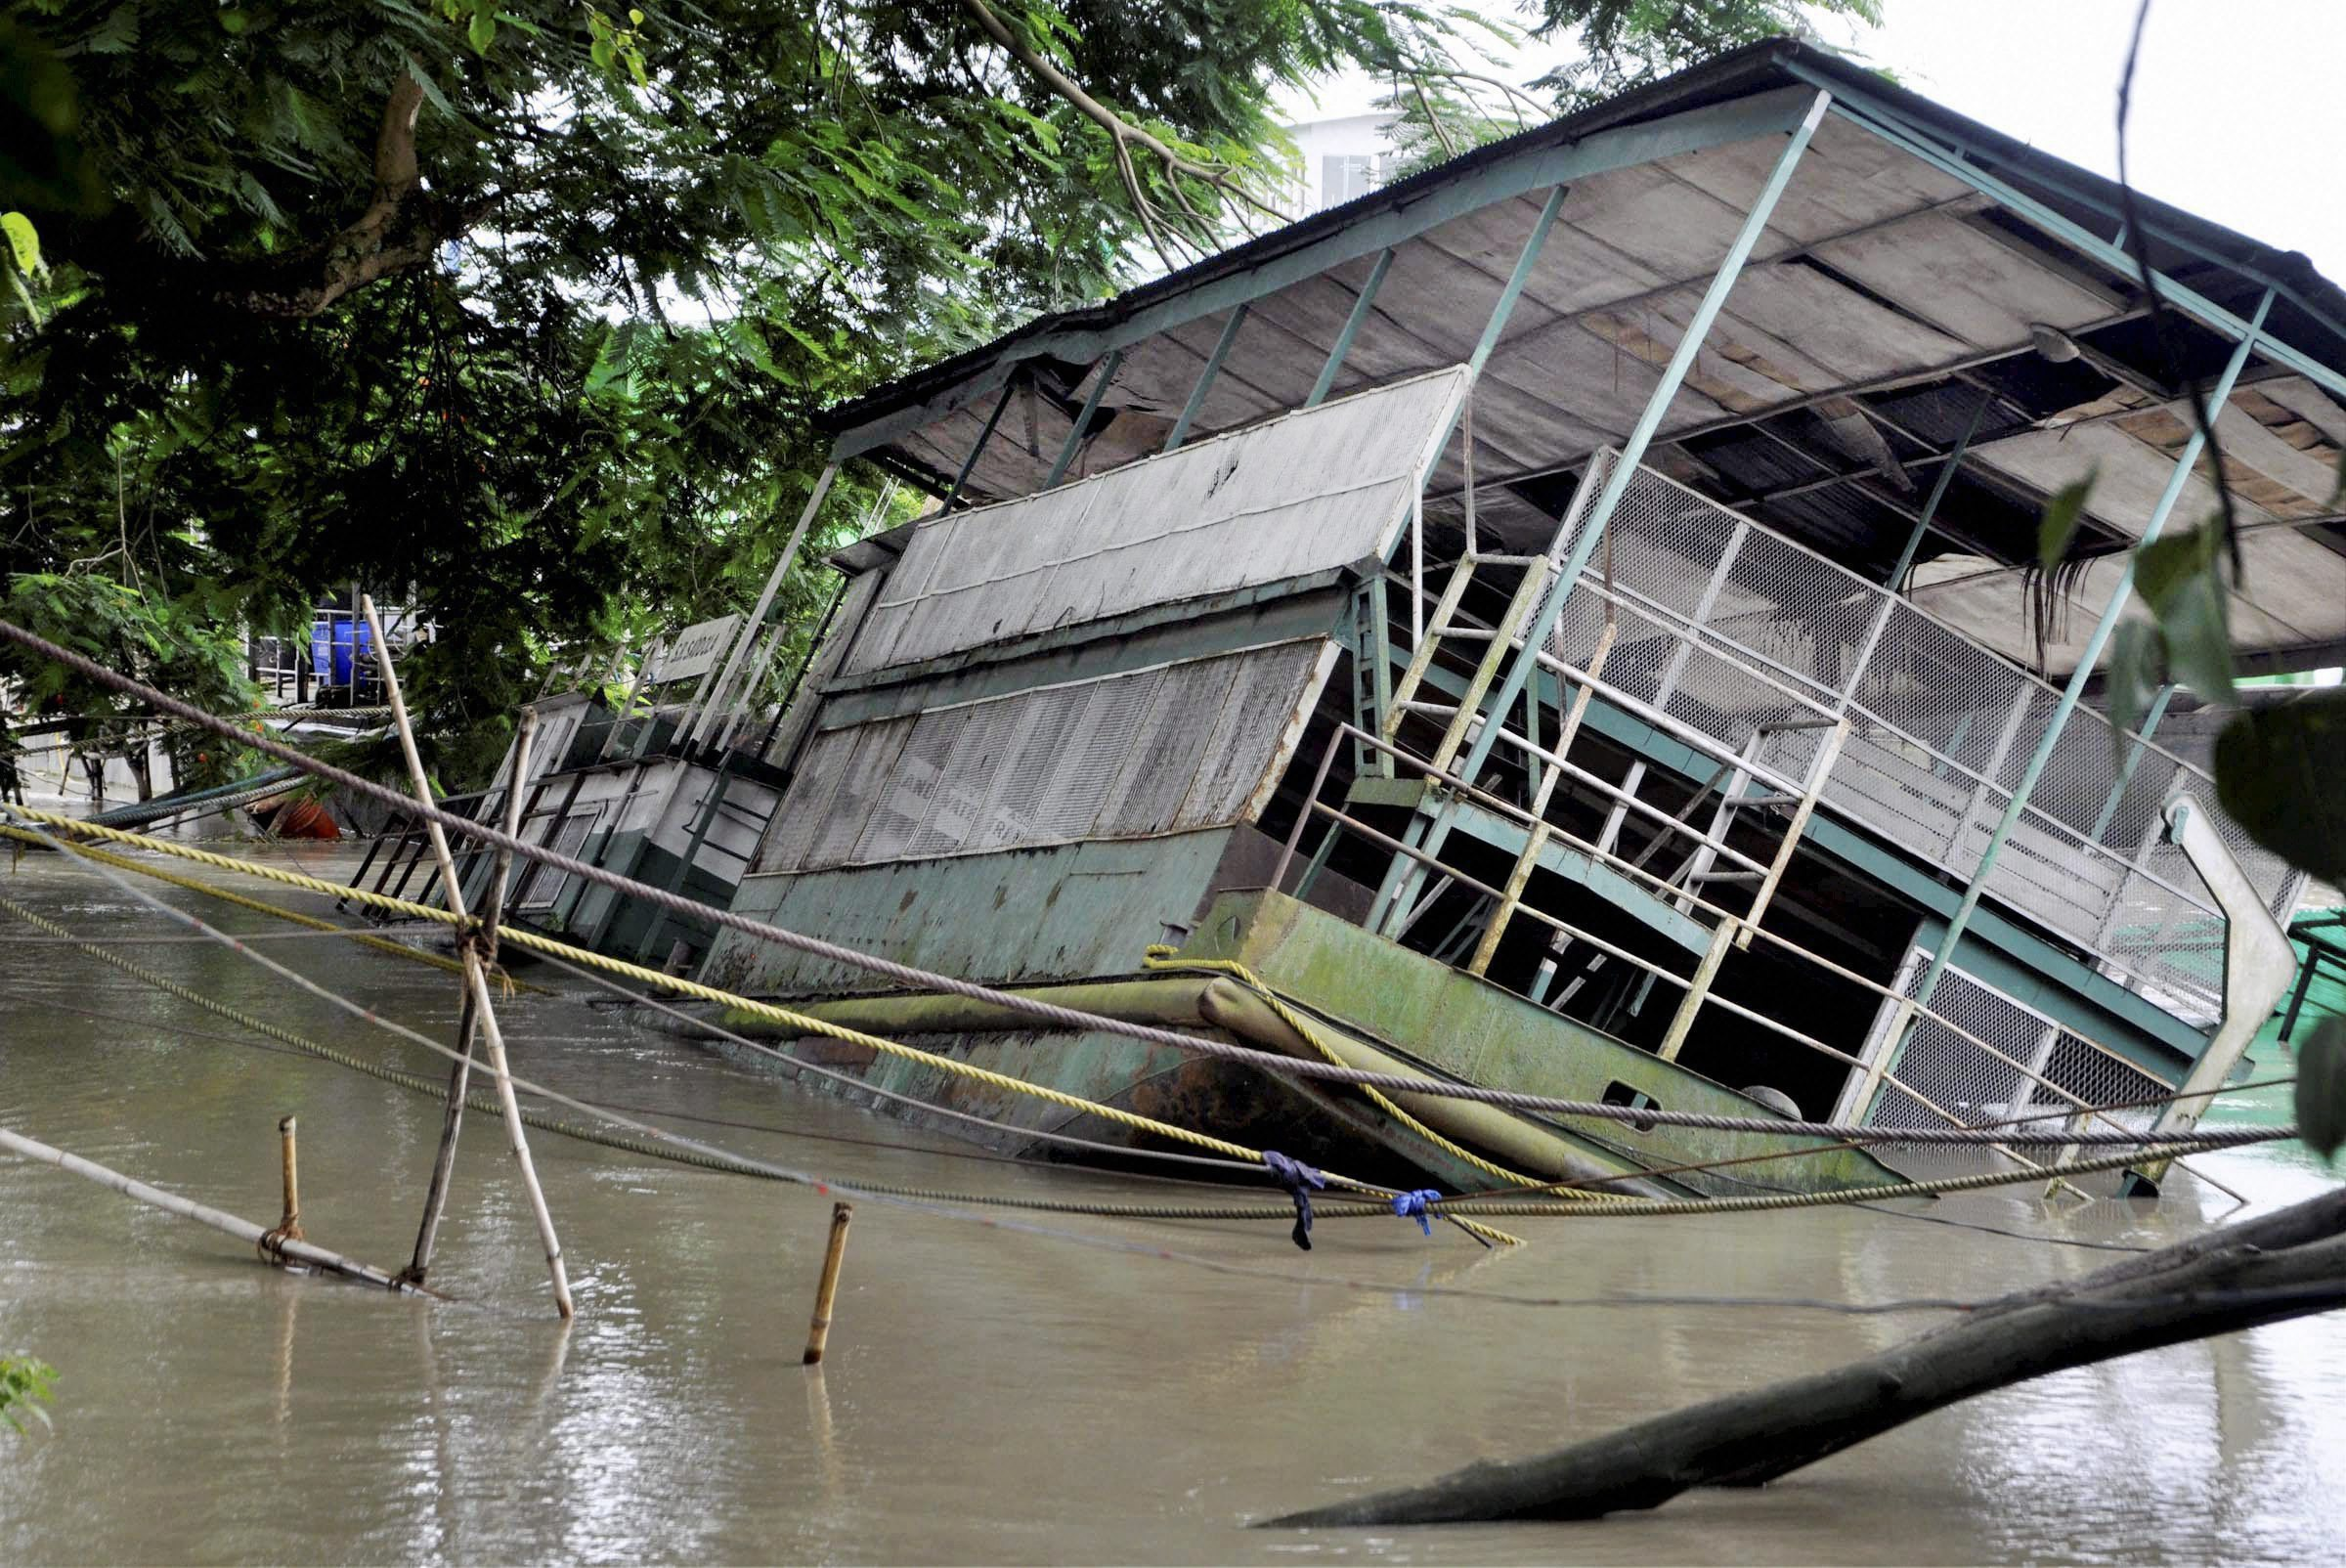 The Rajaduwar Ghat in Guwahati submerged by the flooded Brahmaputra river in on Sunday. PTI Photo.